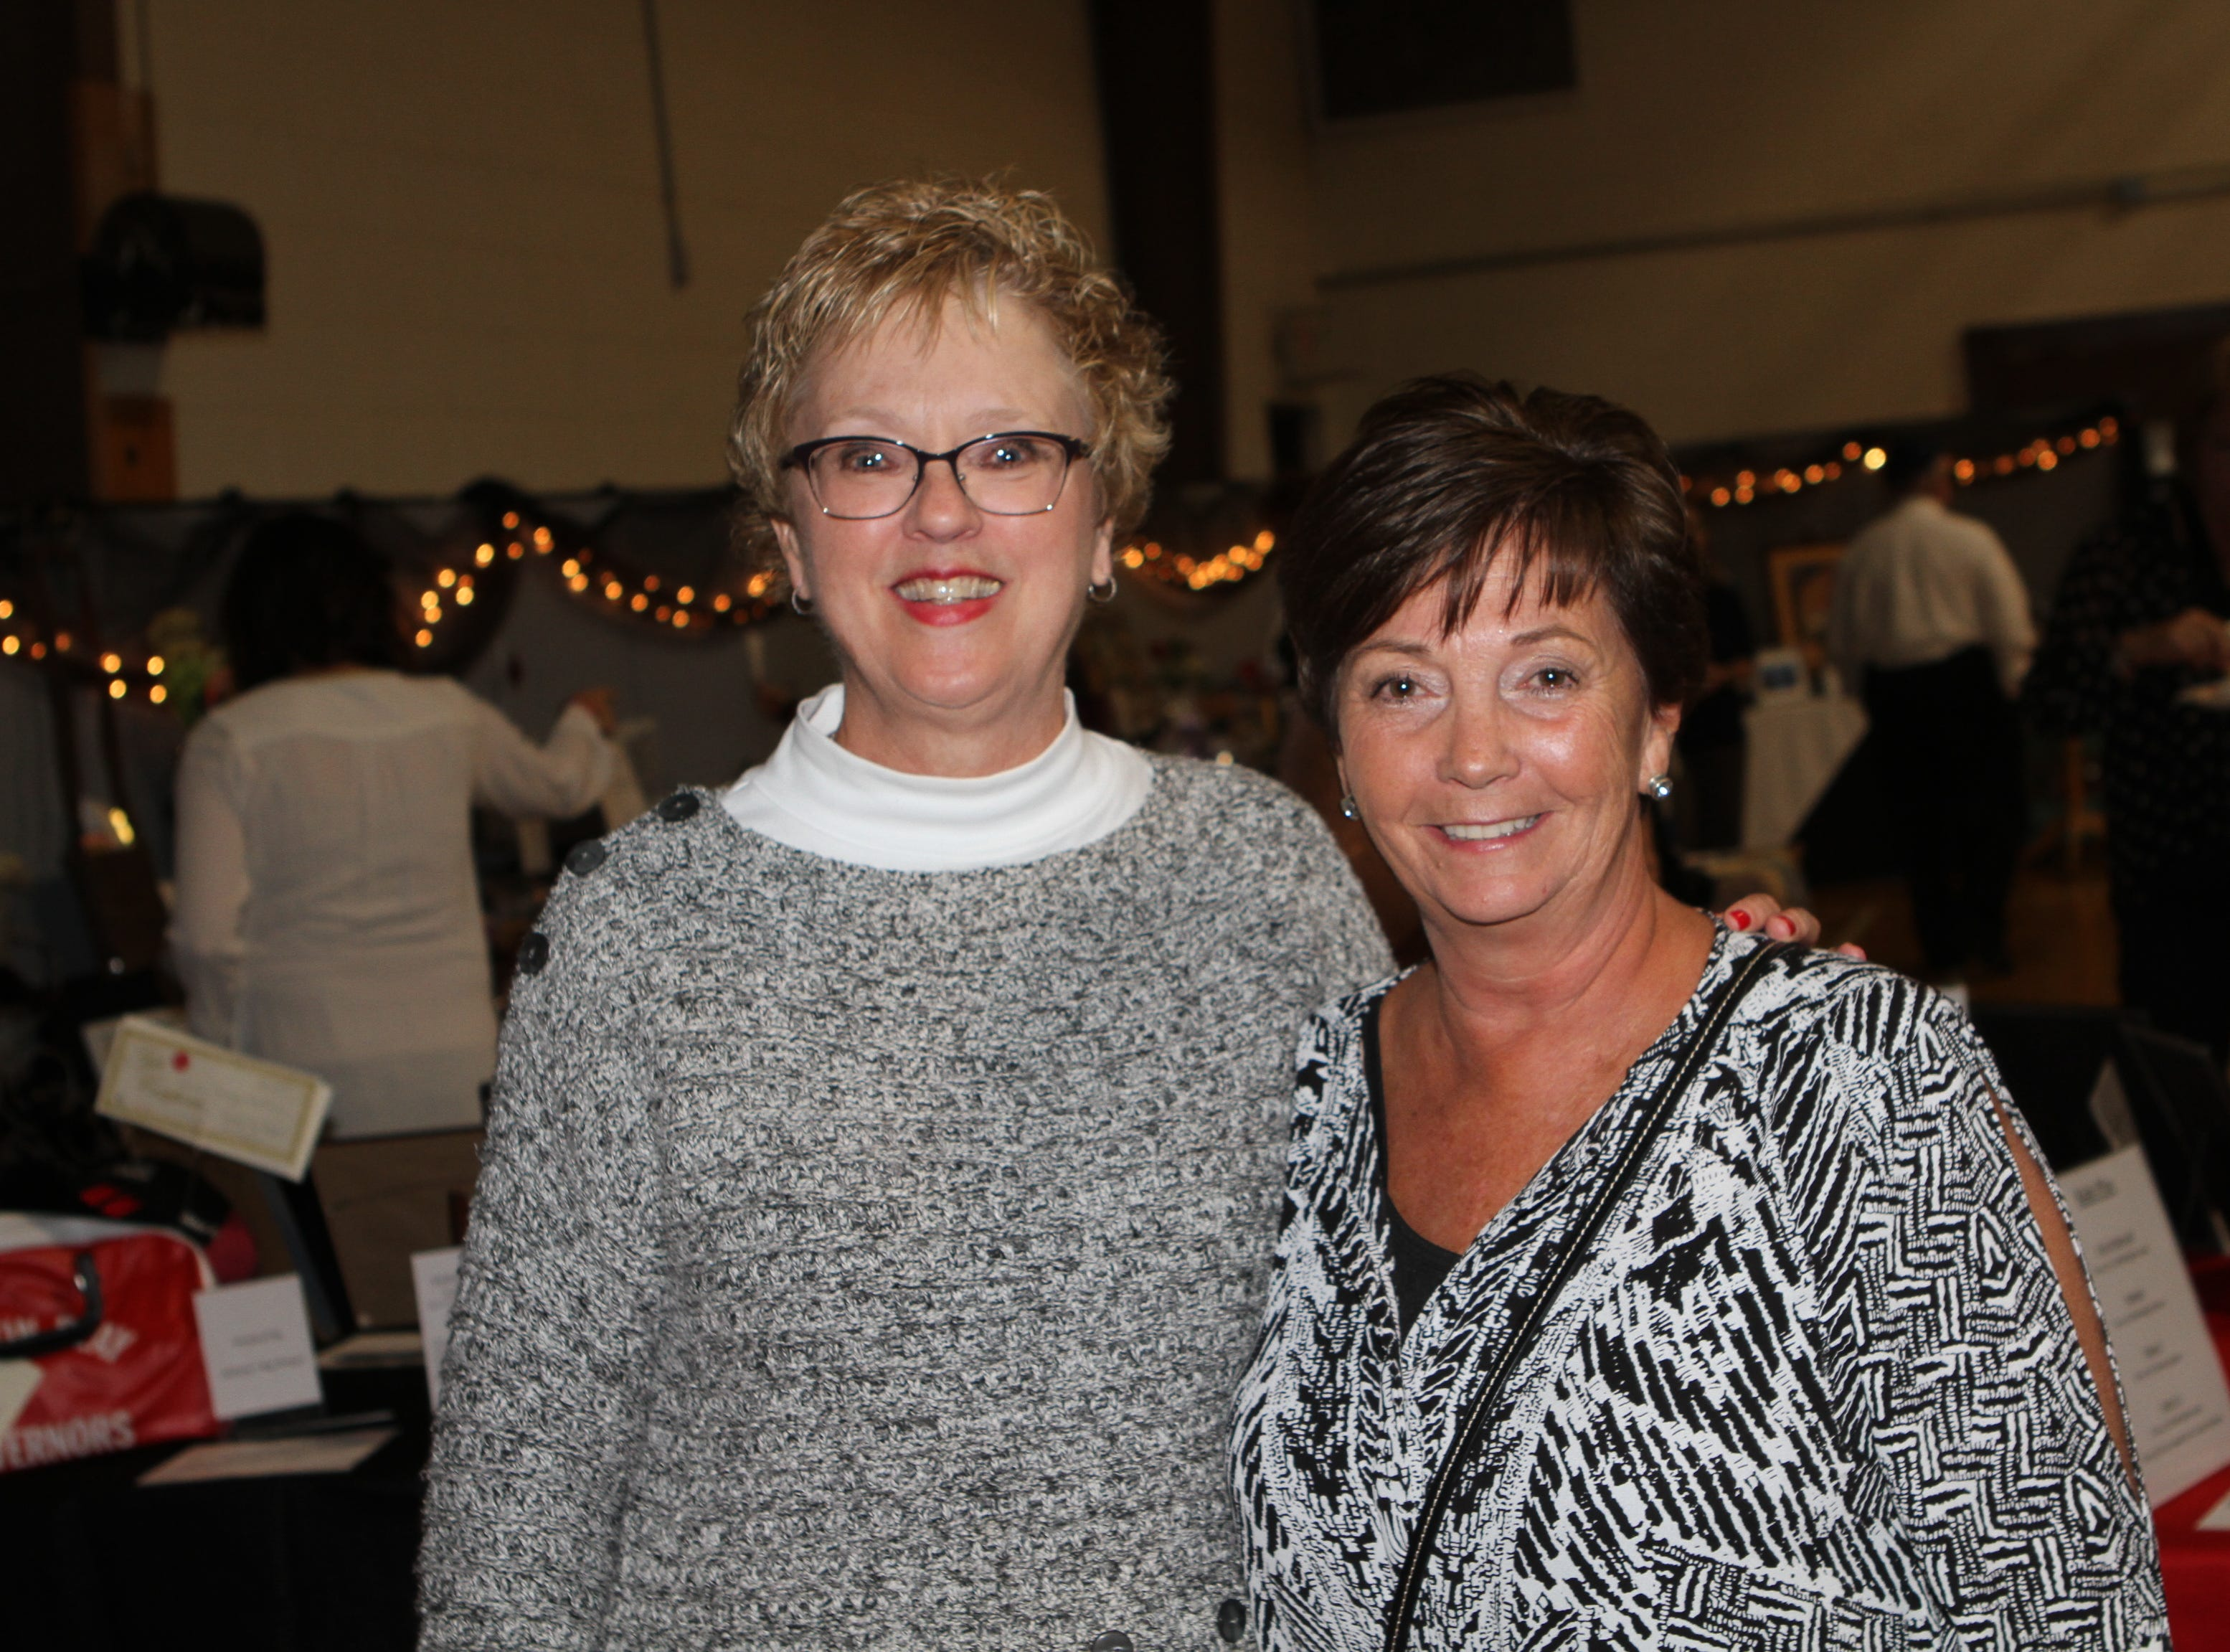 Maggie Kulback and Amy Donnellan at Casino Night at Immaculate Conception School on Saturday, Nov. 3, 2018.